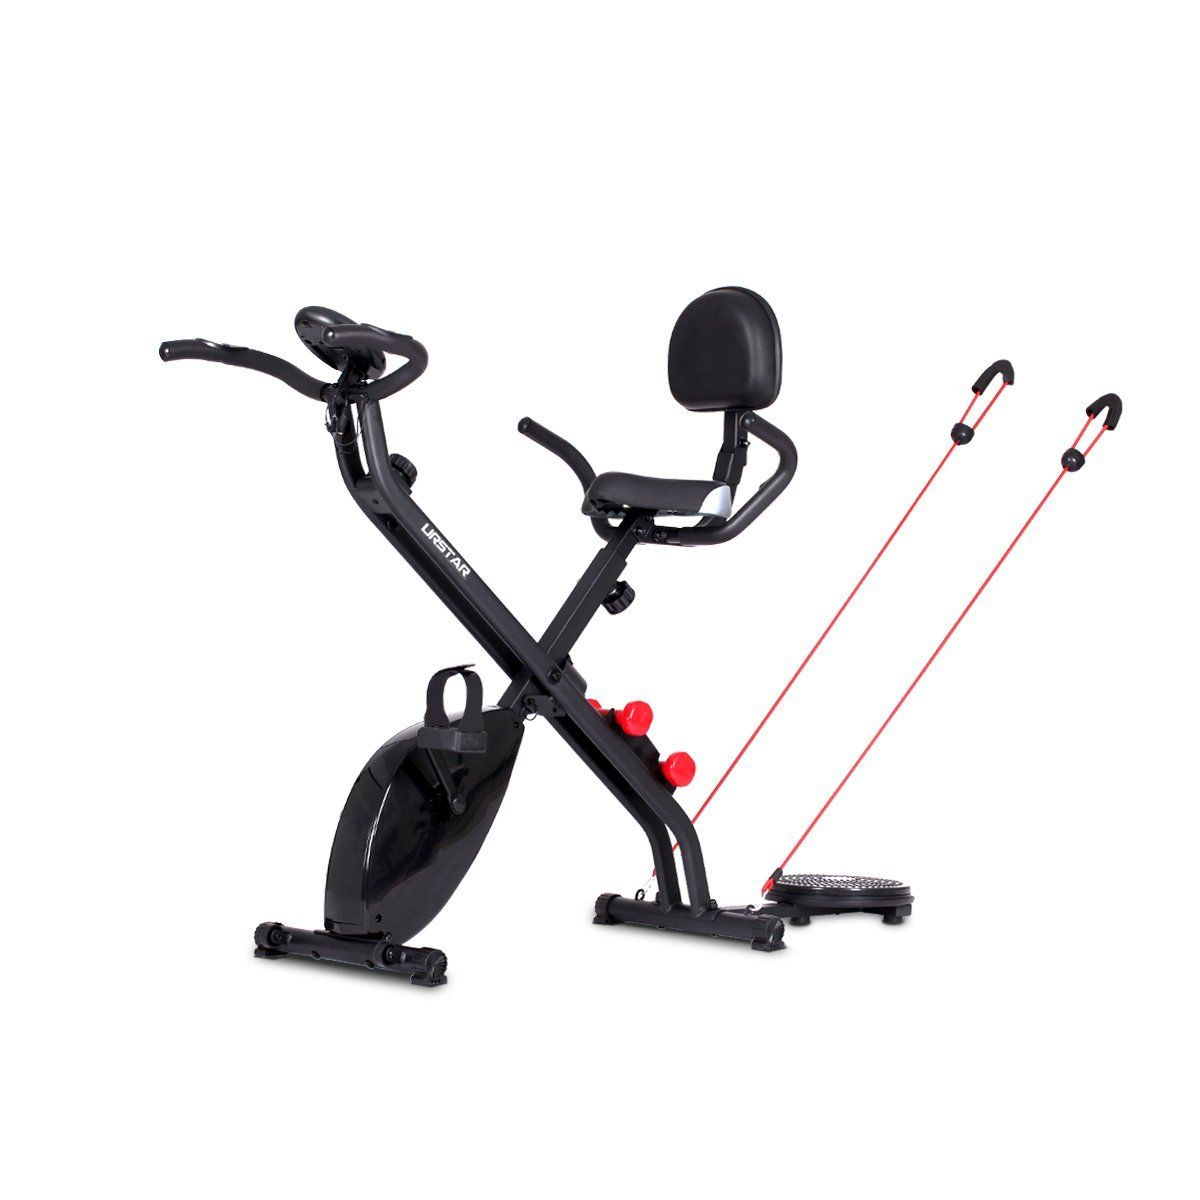 URSTAR 2-in-1 / 4-in-1 Folding Upright Exercise Gym Bike / Abs ...